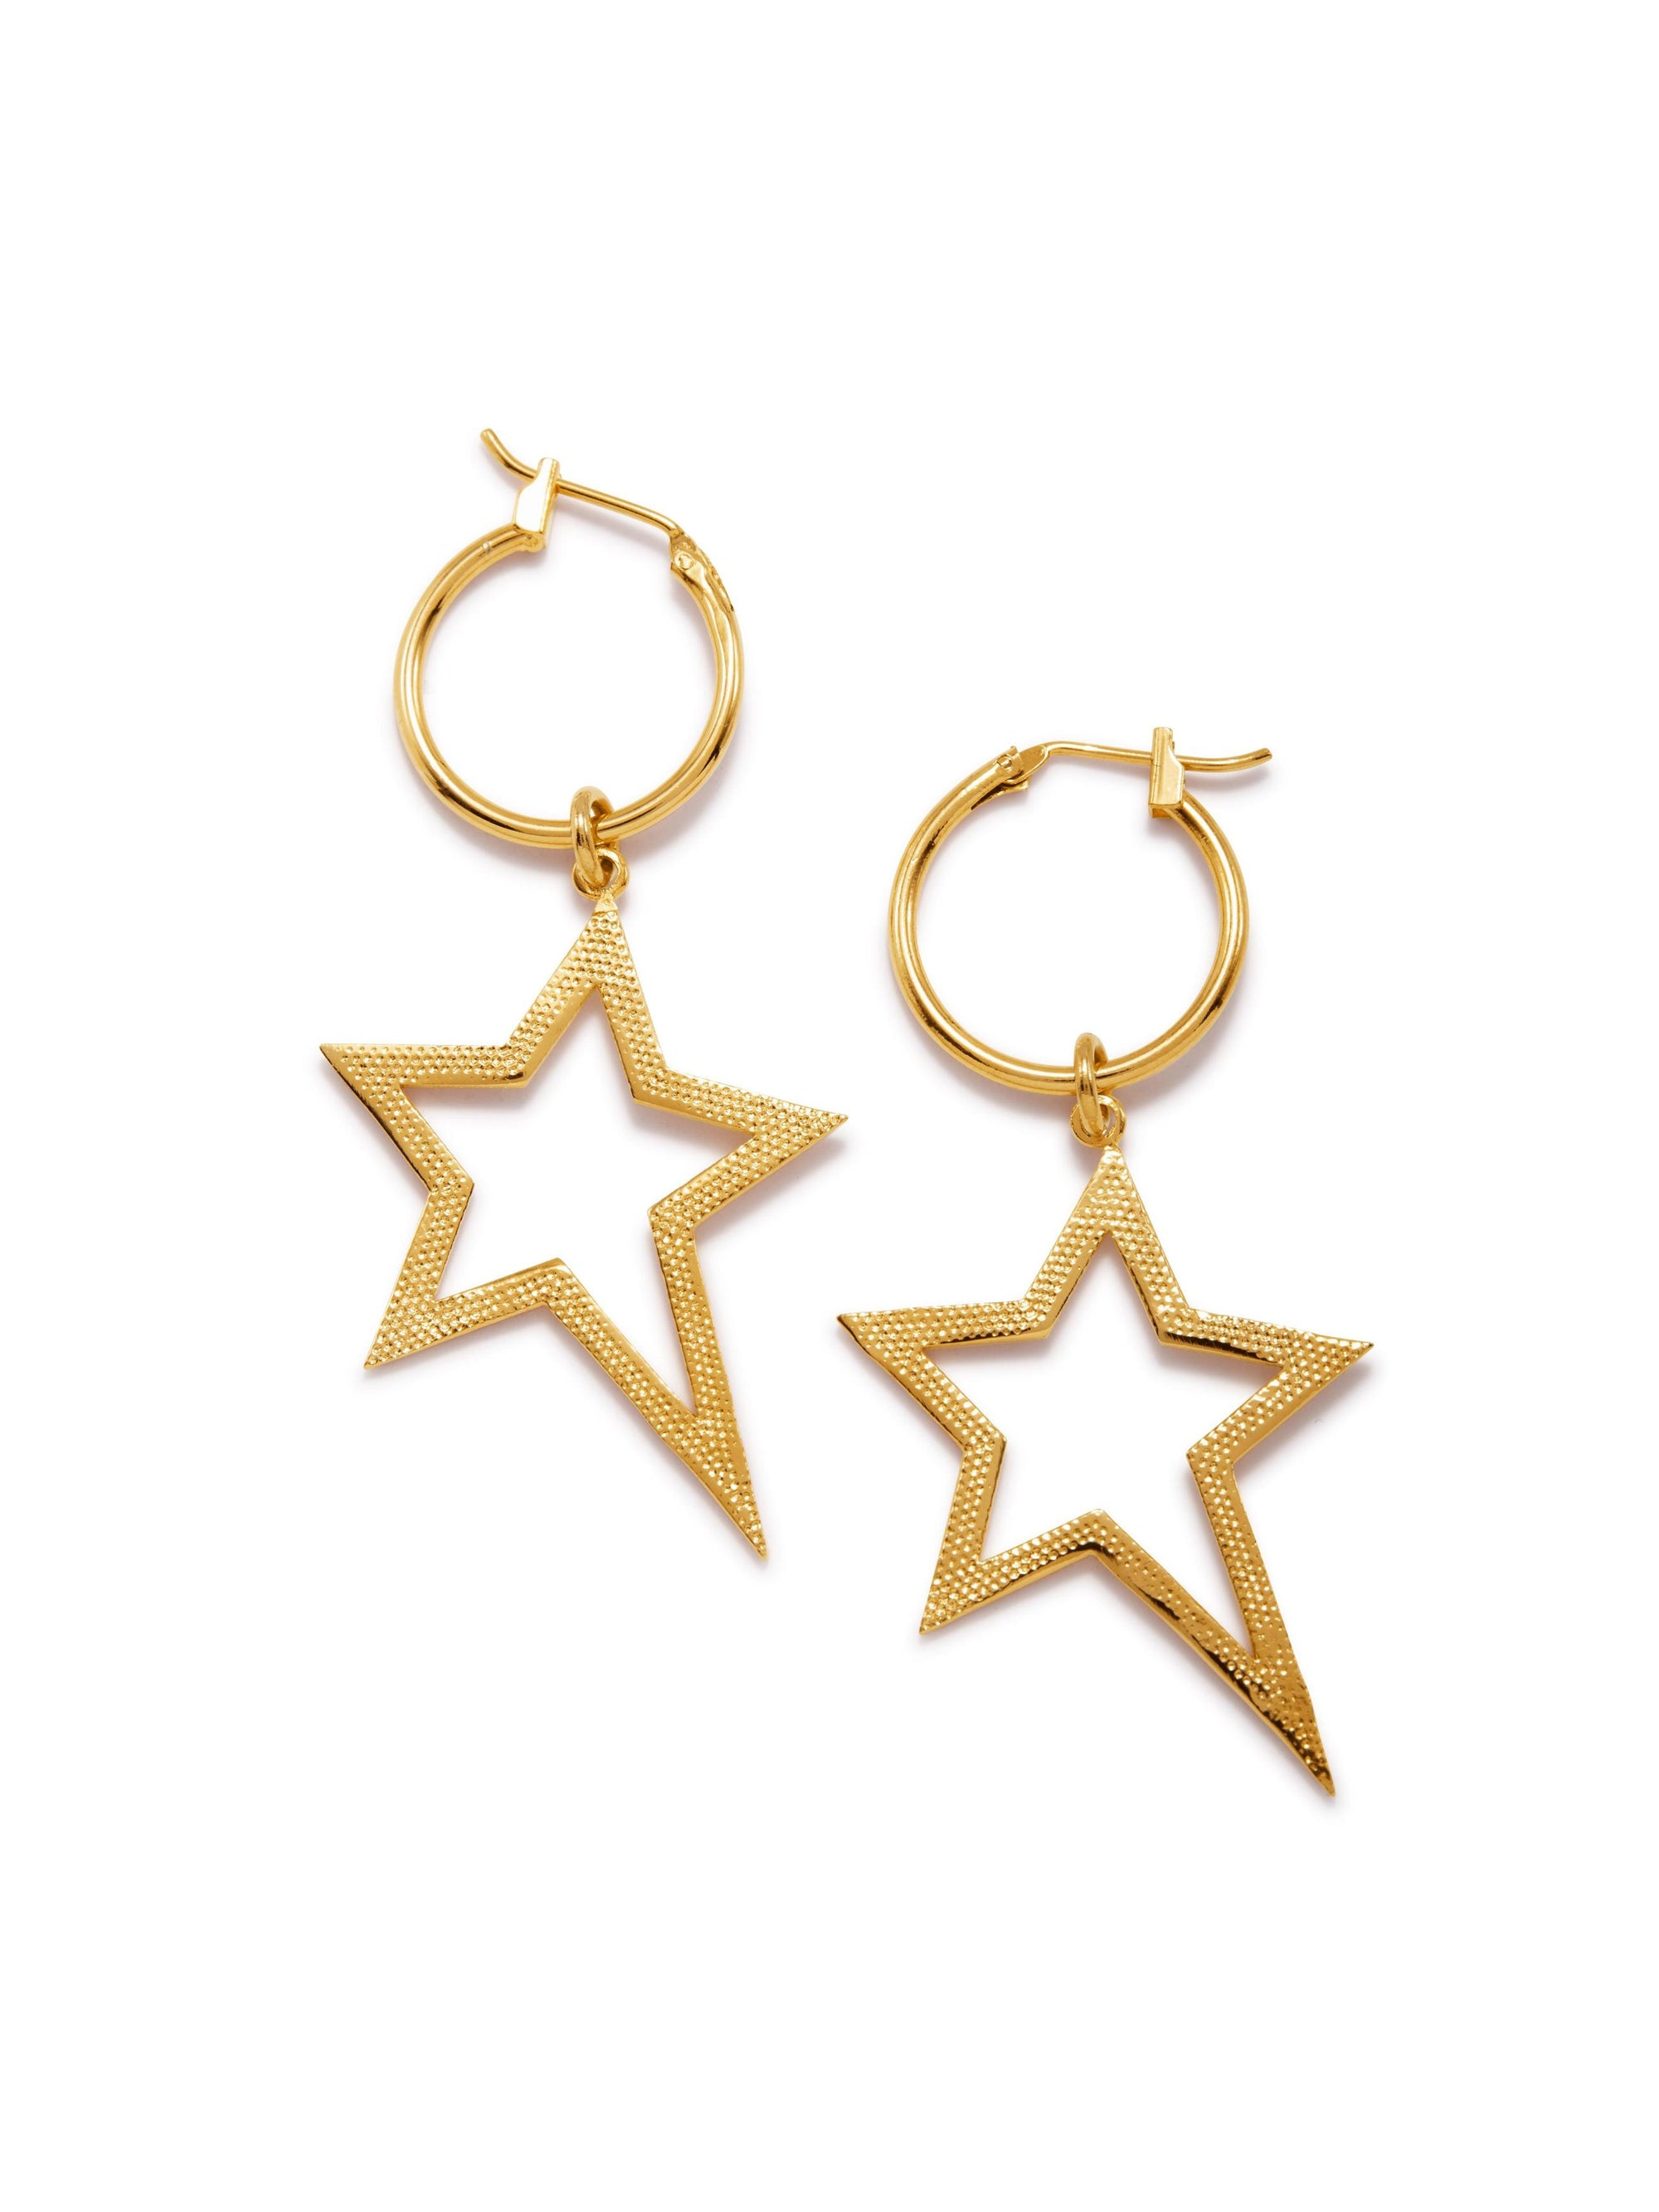 Gold Shooting Star Dust Hoop Earrings-Earrings-JAREDJAMIN Jewelry Online-JAREDJAMIN - Fashion Jewelry & Accessories